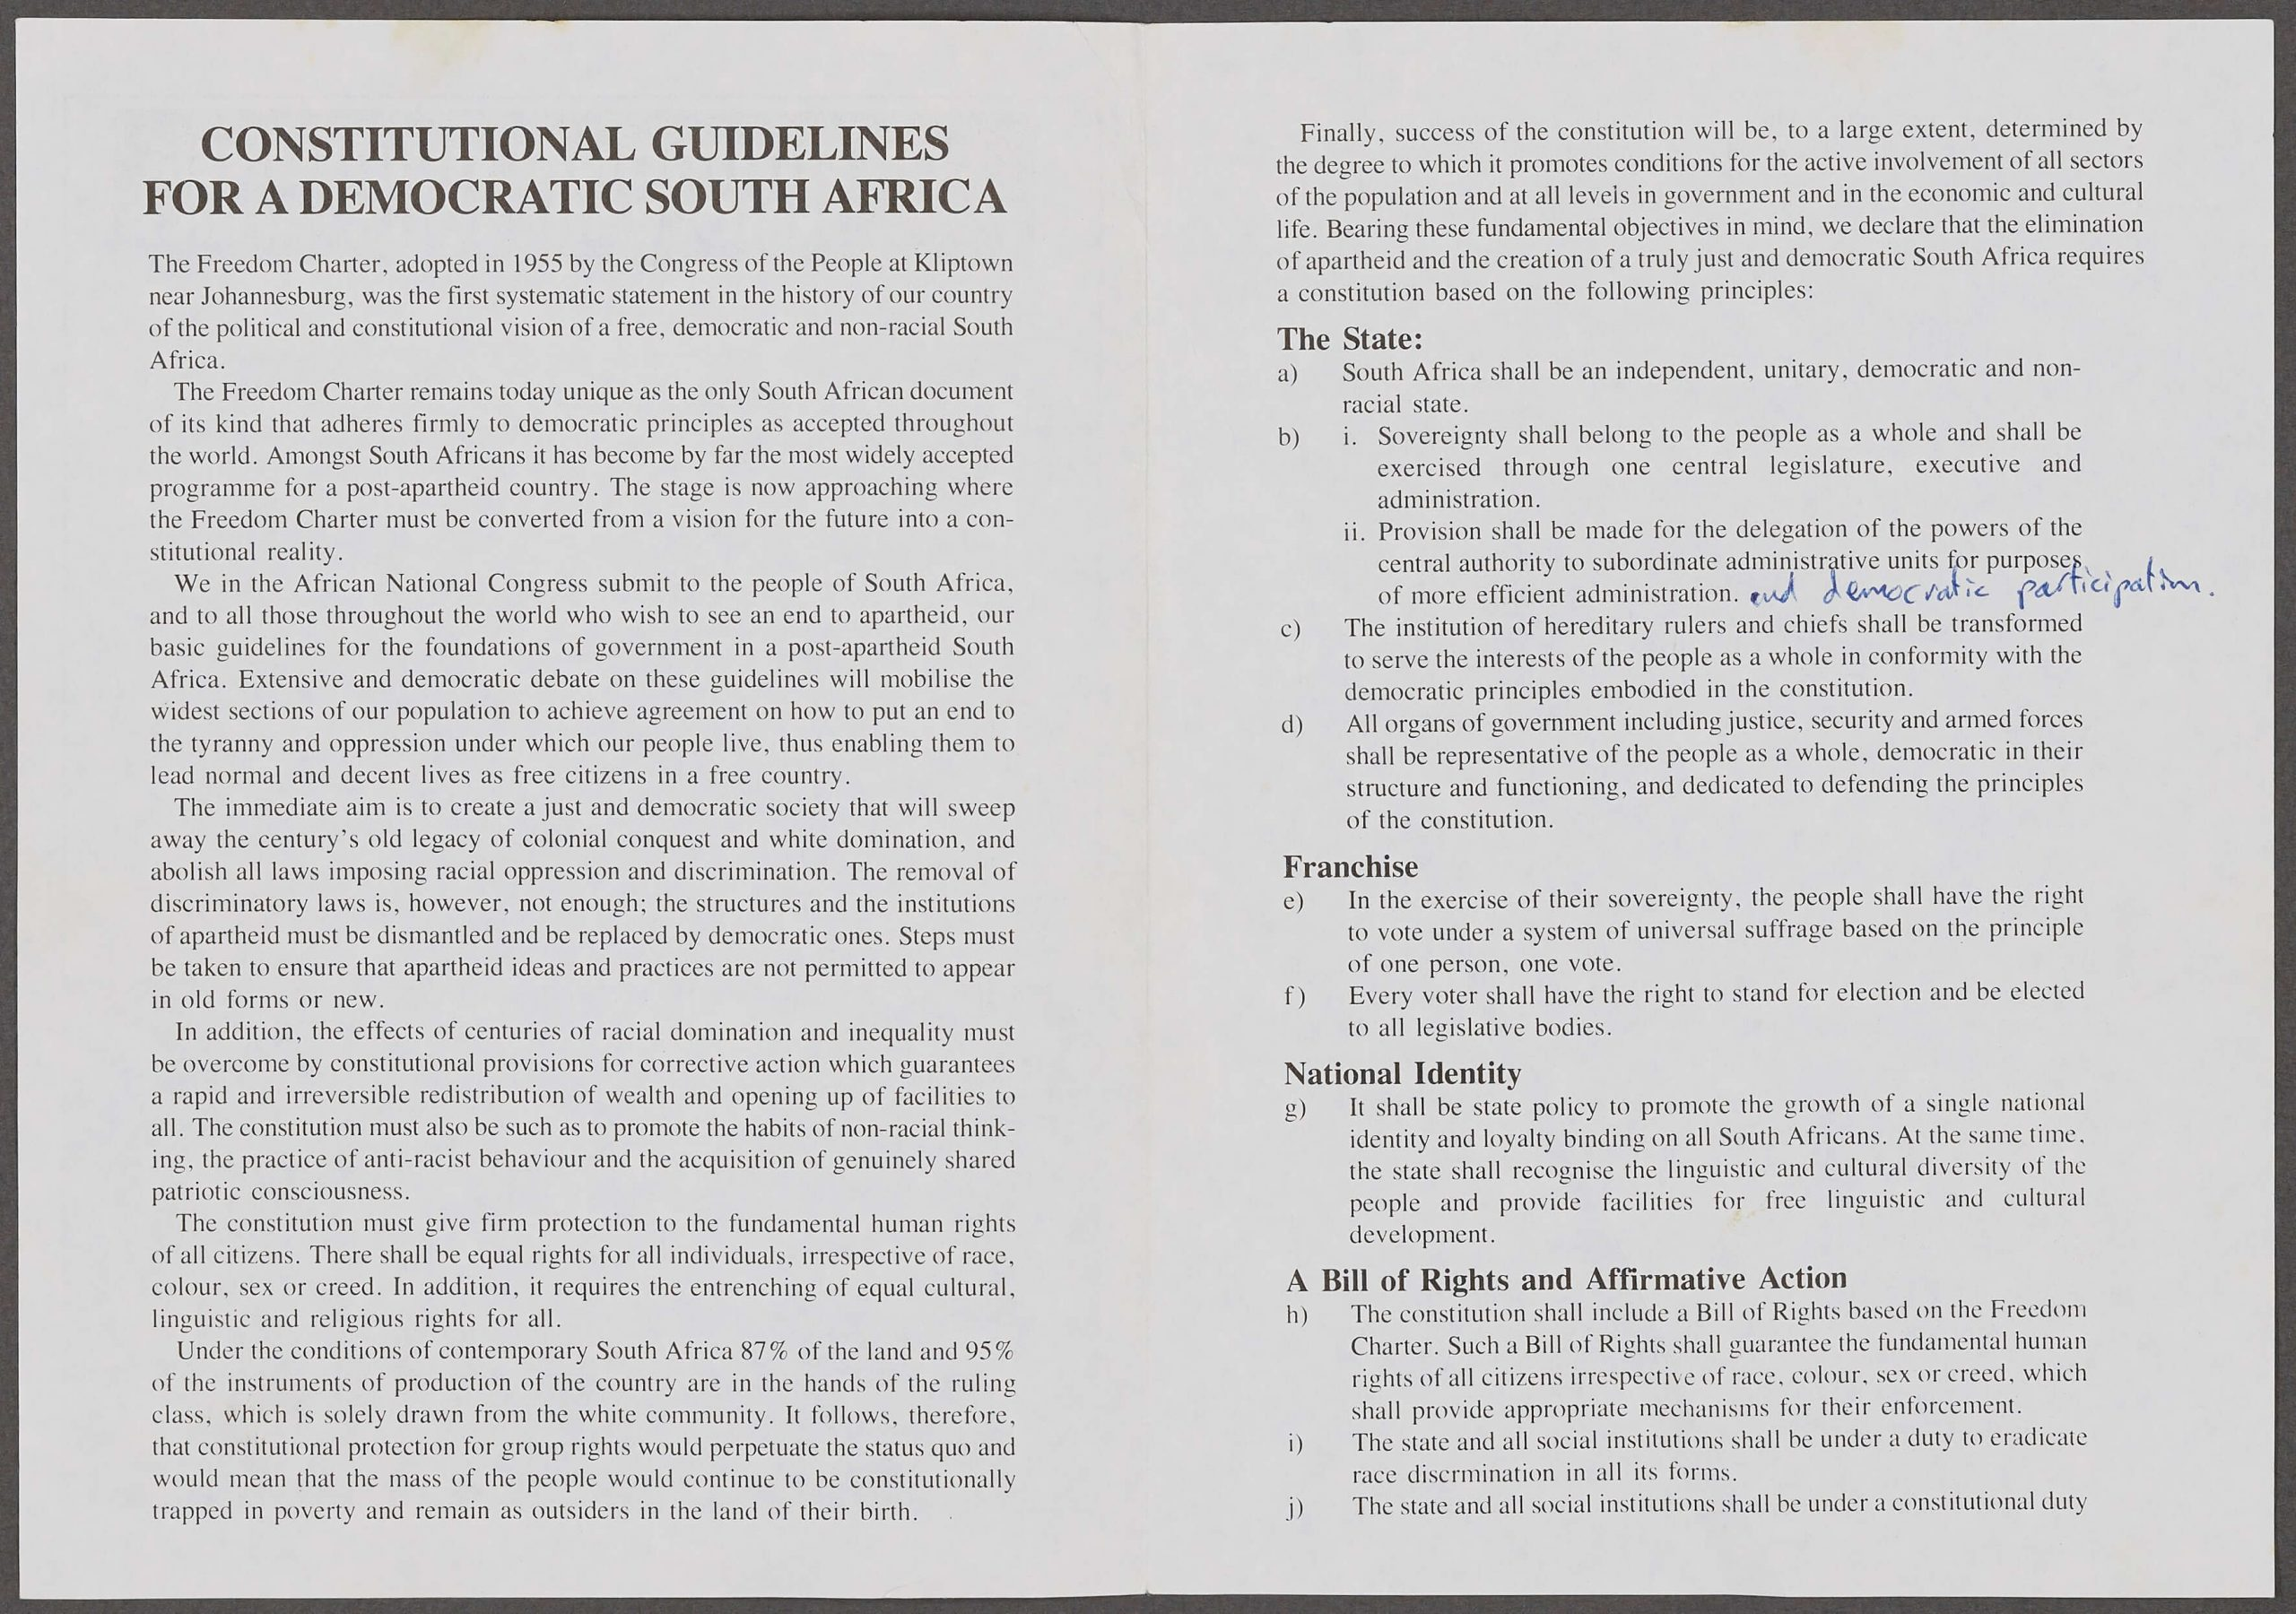 008_constitutional guidelines pamphlet page 2 (1)